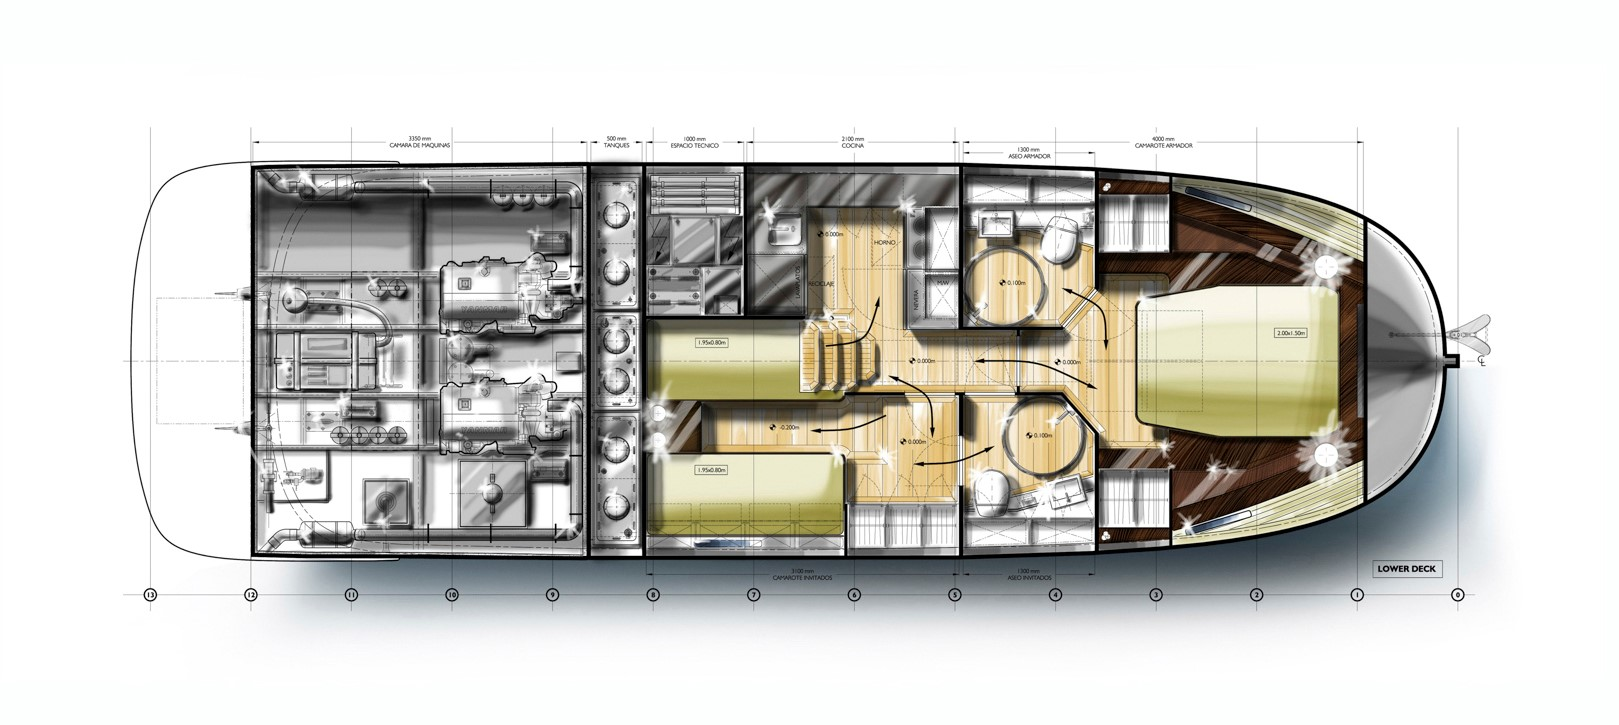 Minorca Islander 42 Flybridge - Lower Level layout